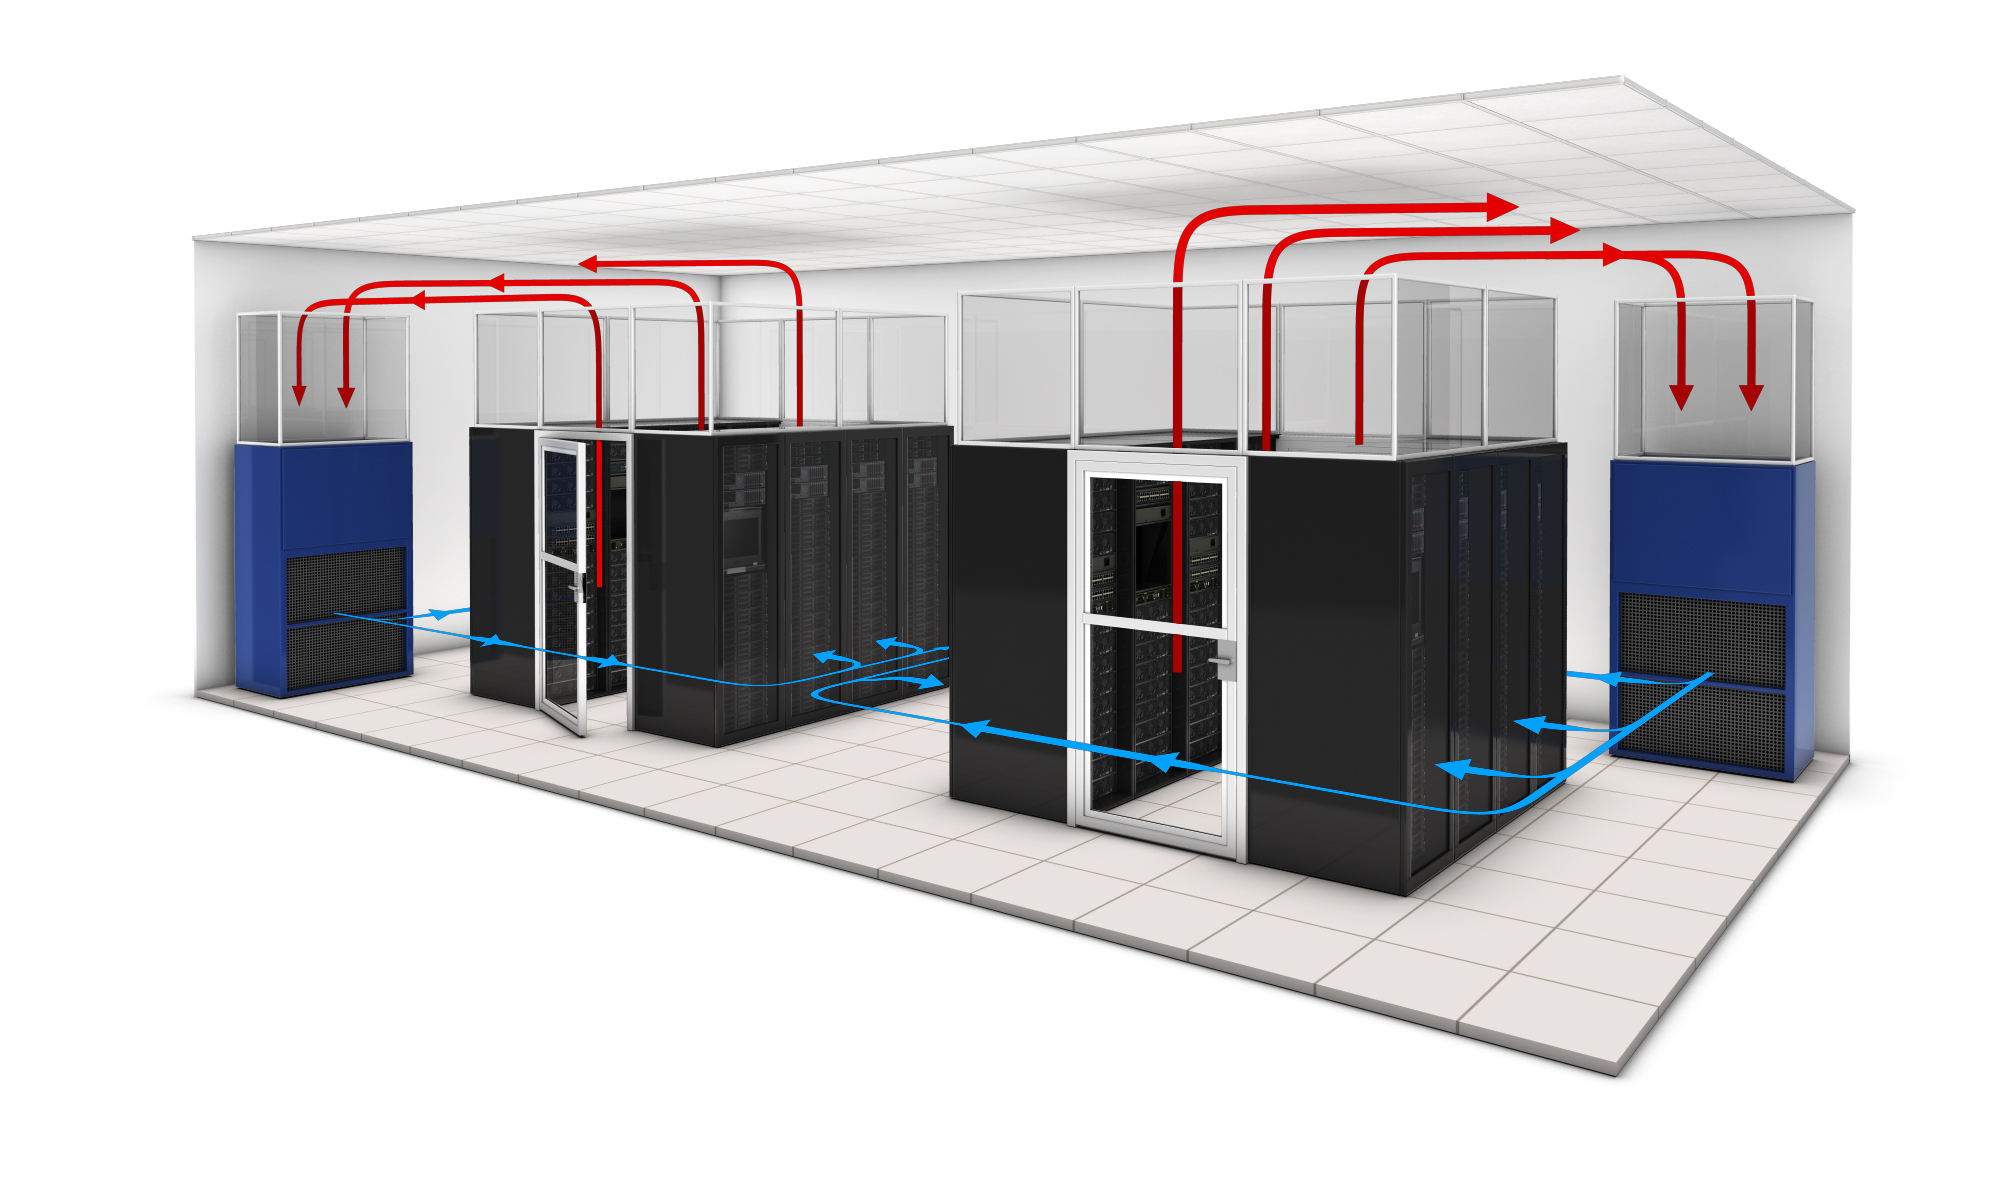 Air Flow Assessment Is The First Step In Creating Data Centers